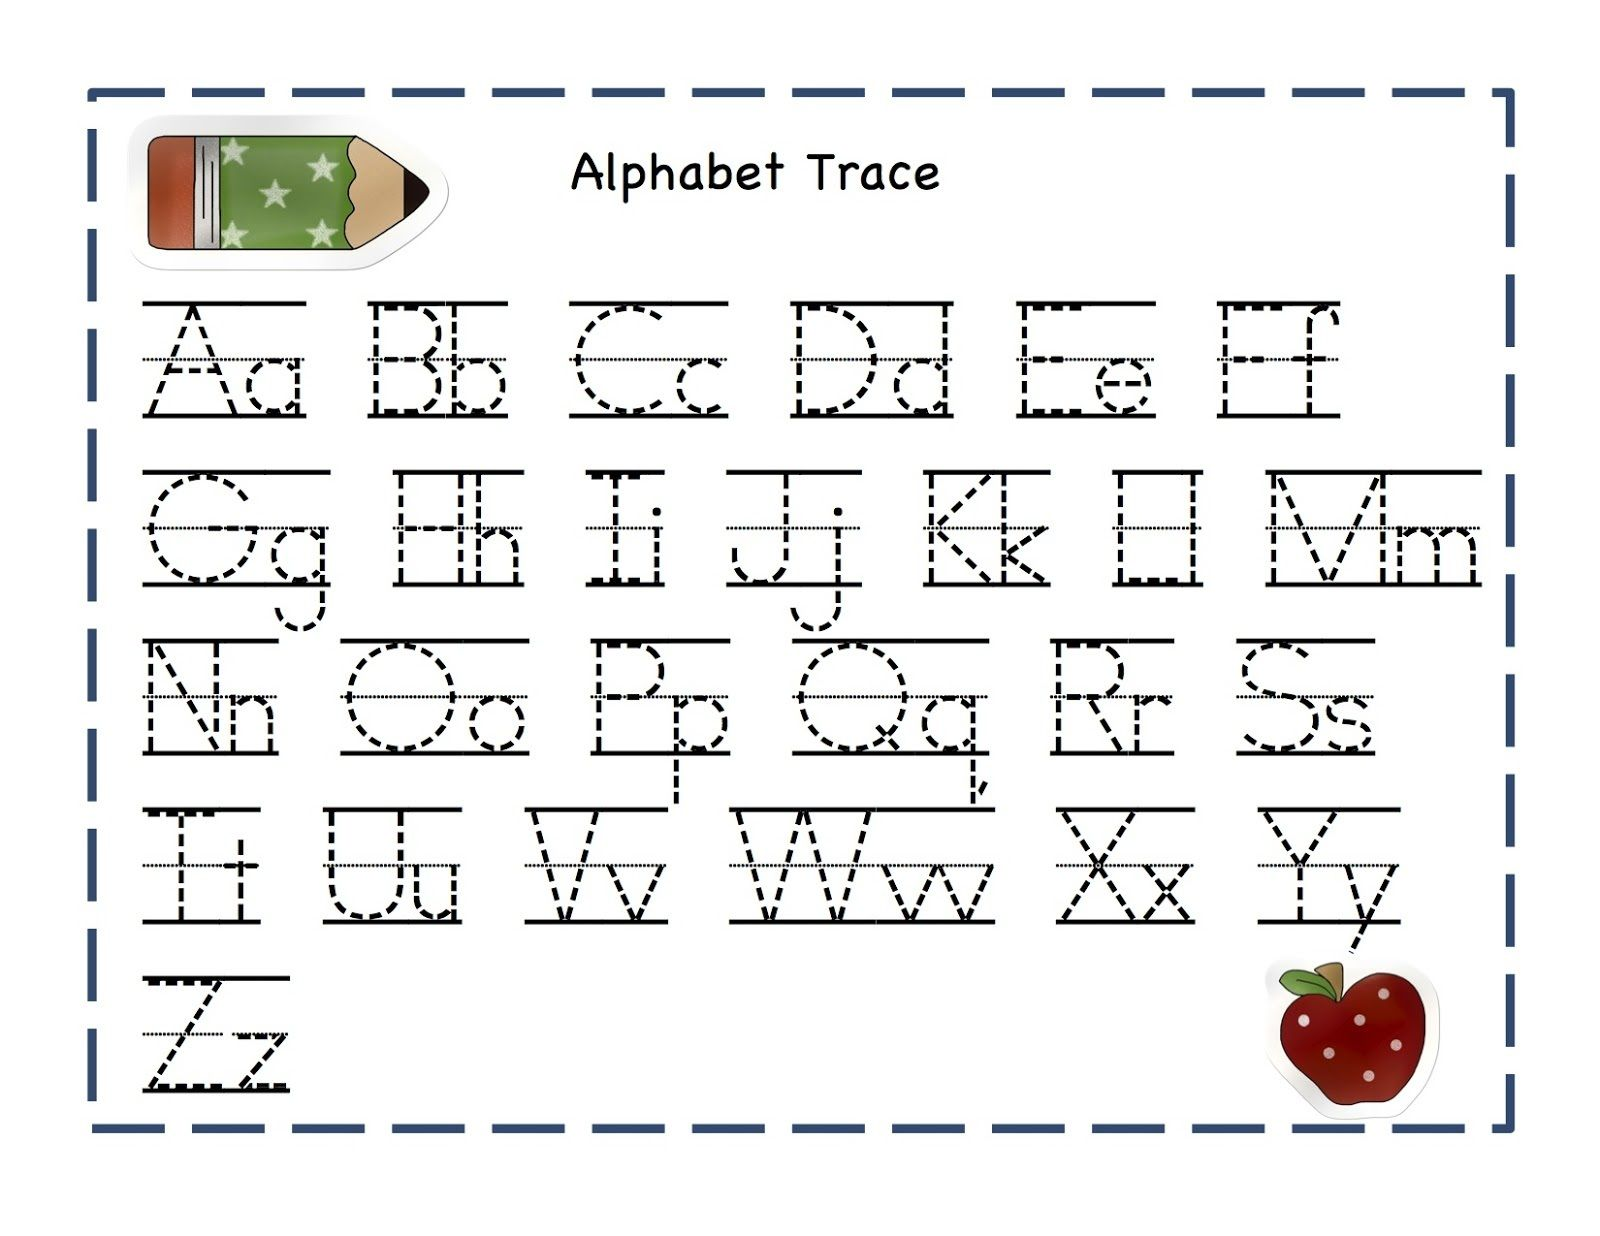 worksheet Alphabet Tracing Pages printable alphabet tracing pages activity shelter and tracer for kids shelter